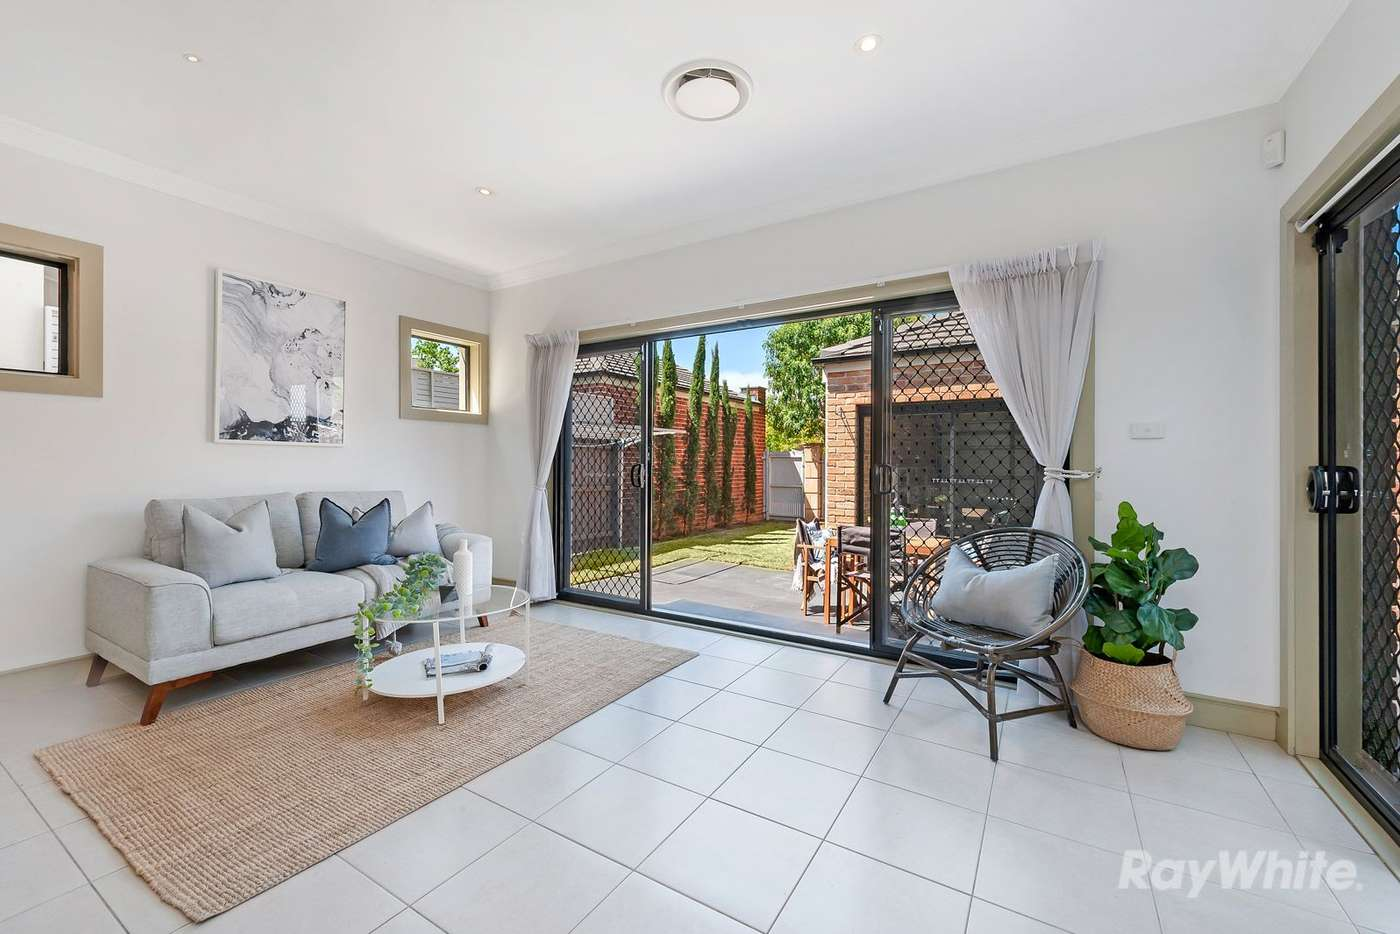 Fifth view of Homely house listing, 8 Malton Street, Stanhope Gardens NSW 2768